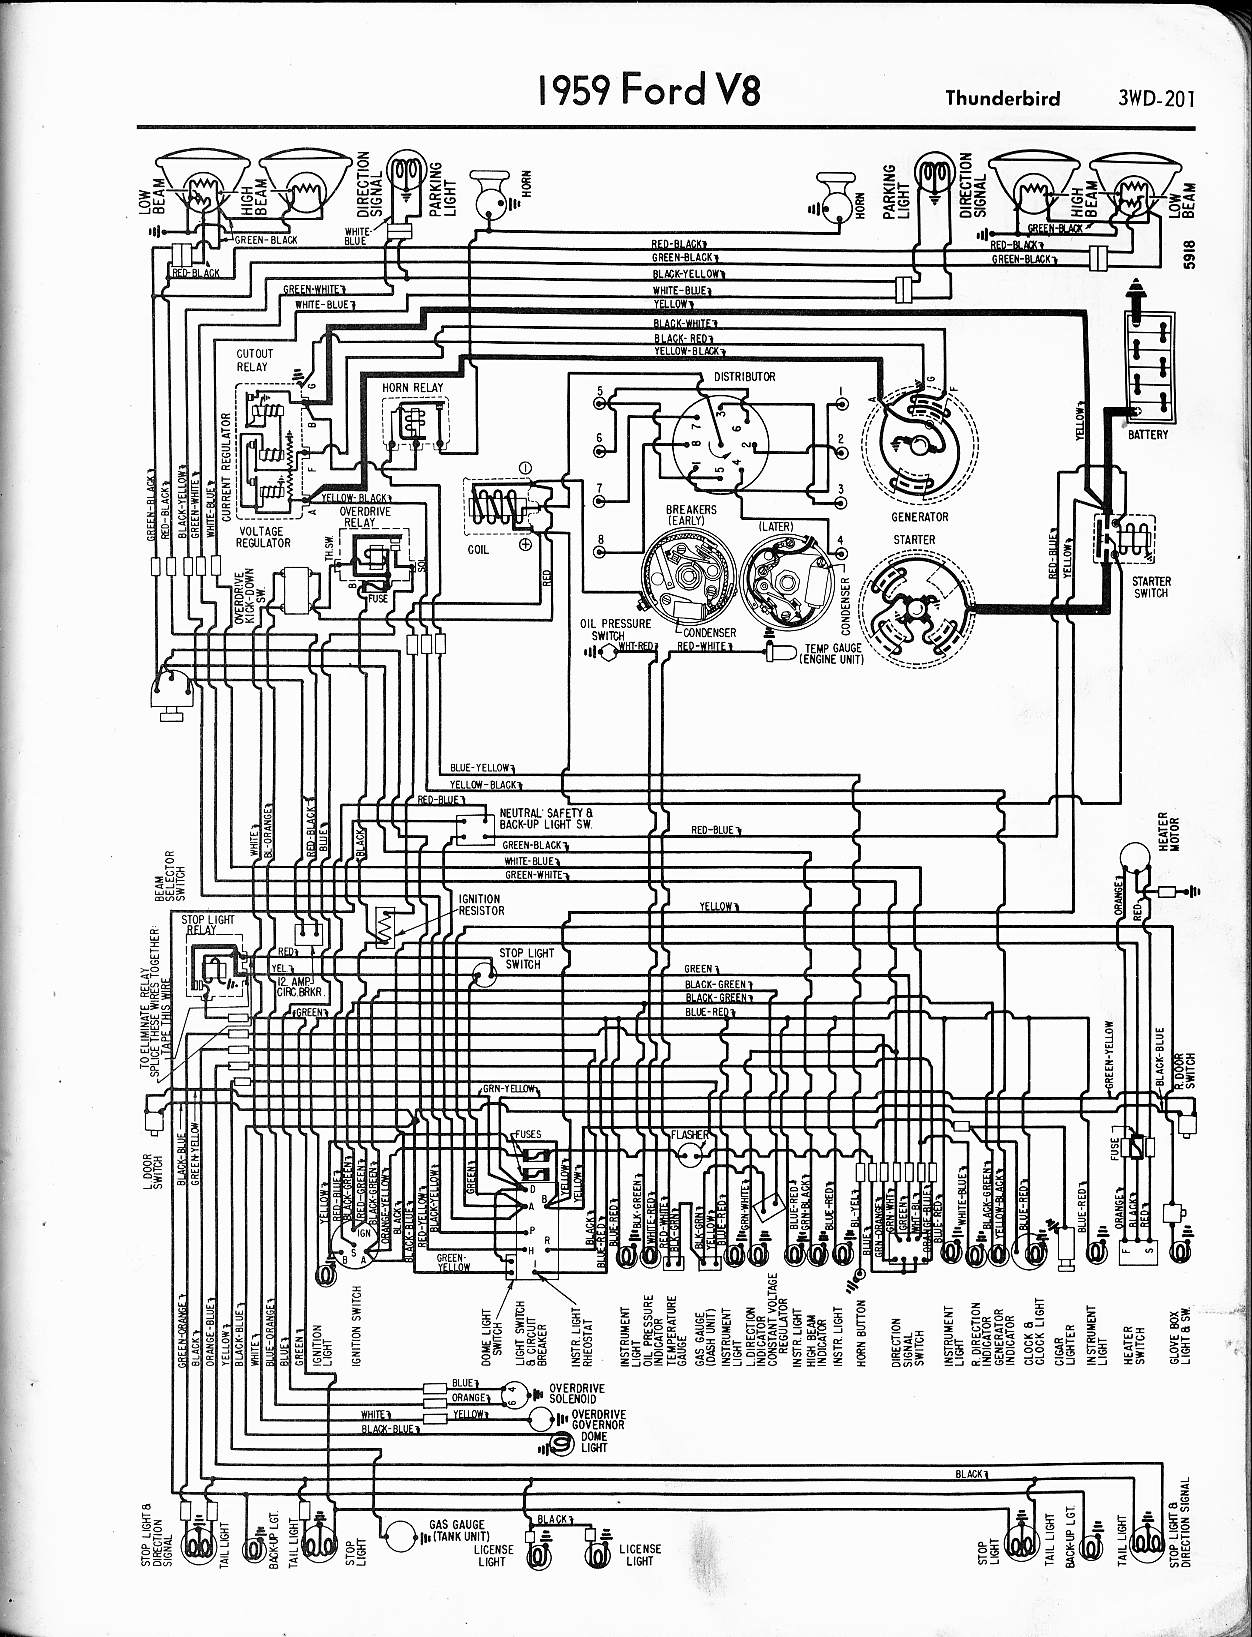 1960 ford headlight switch diagram wiring diagram structure 1961 Ford F100 Radiator